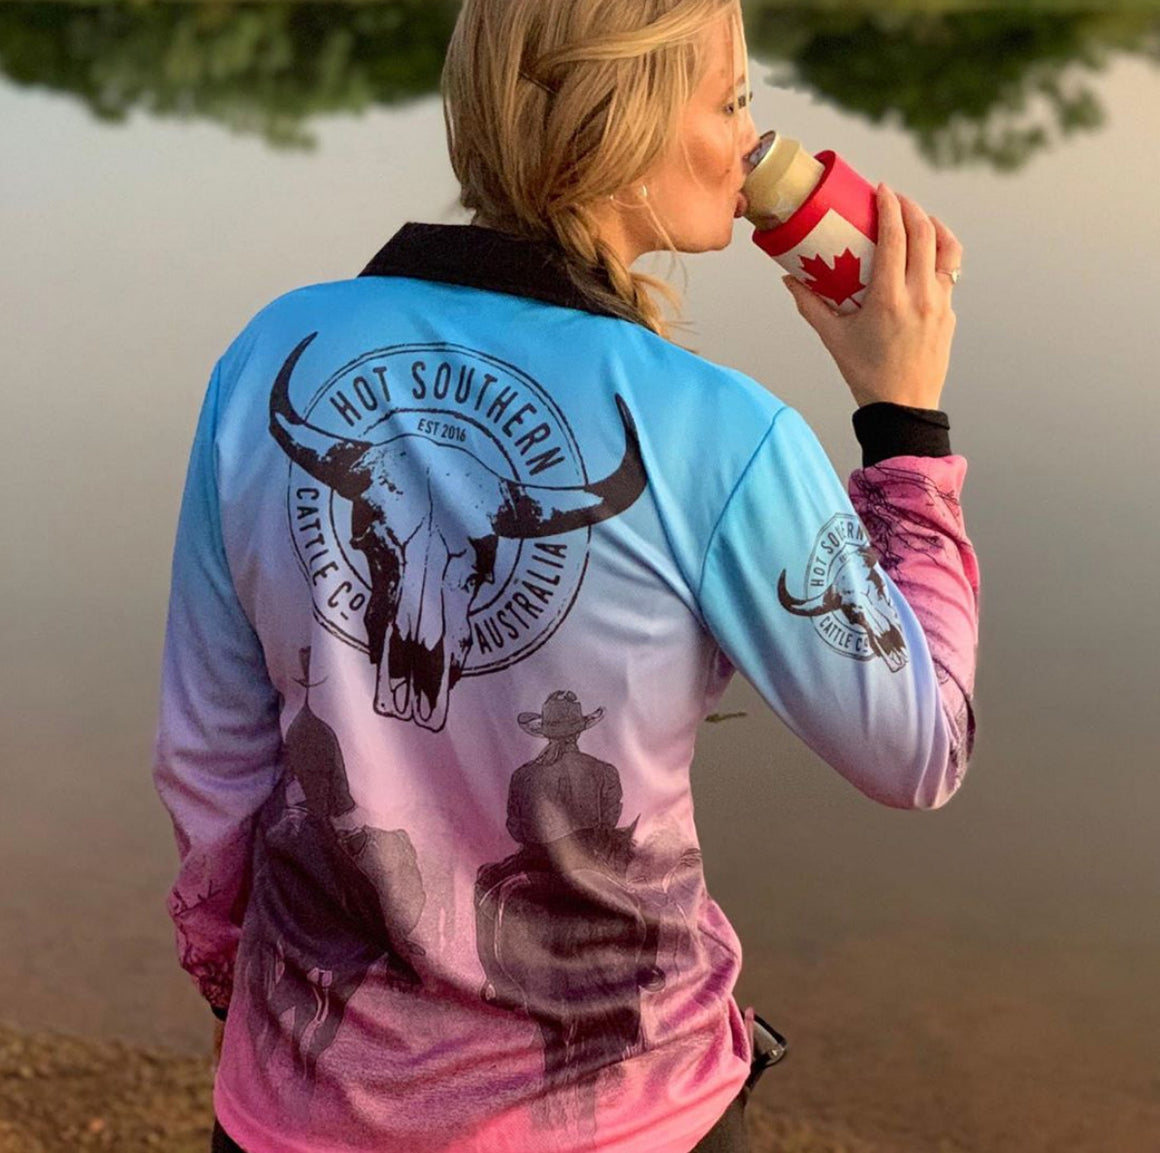 Cattle Co Ladies Fishing Shirt - Blue & Pink Drover